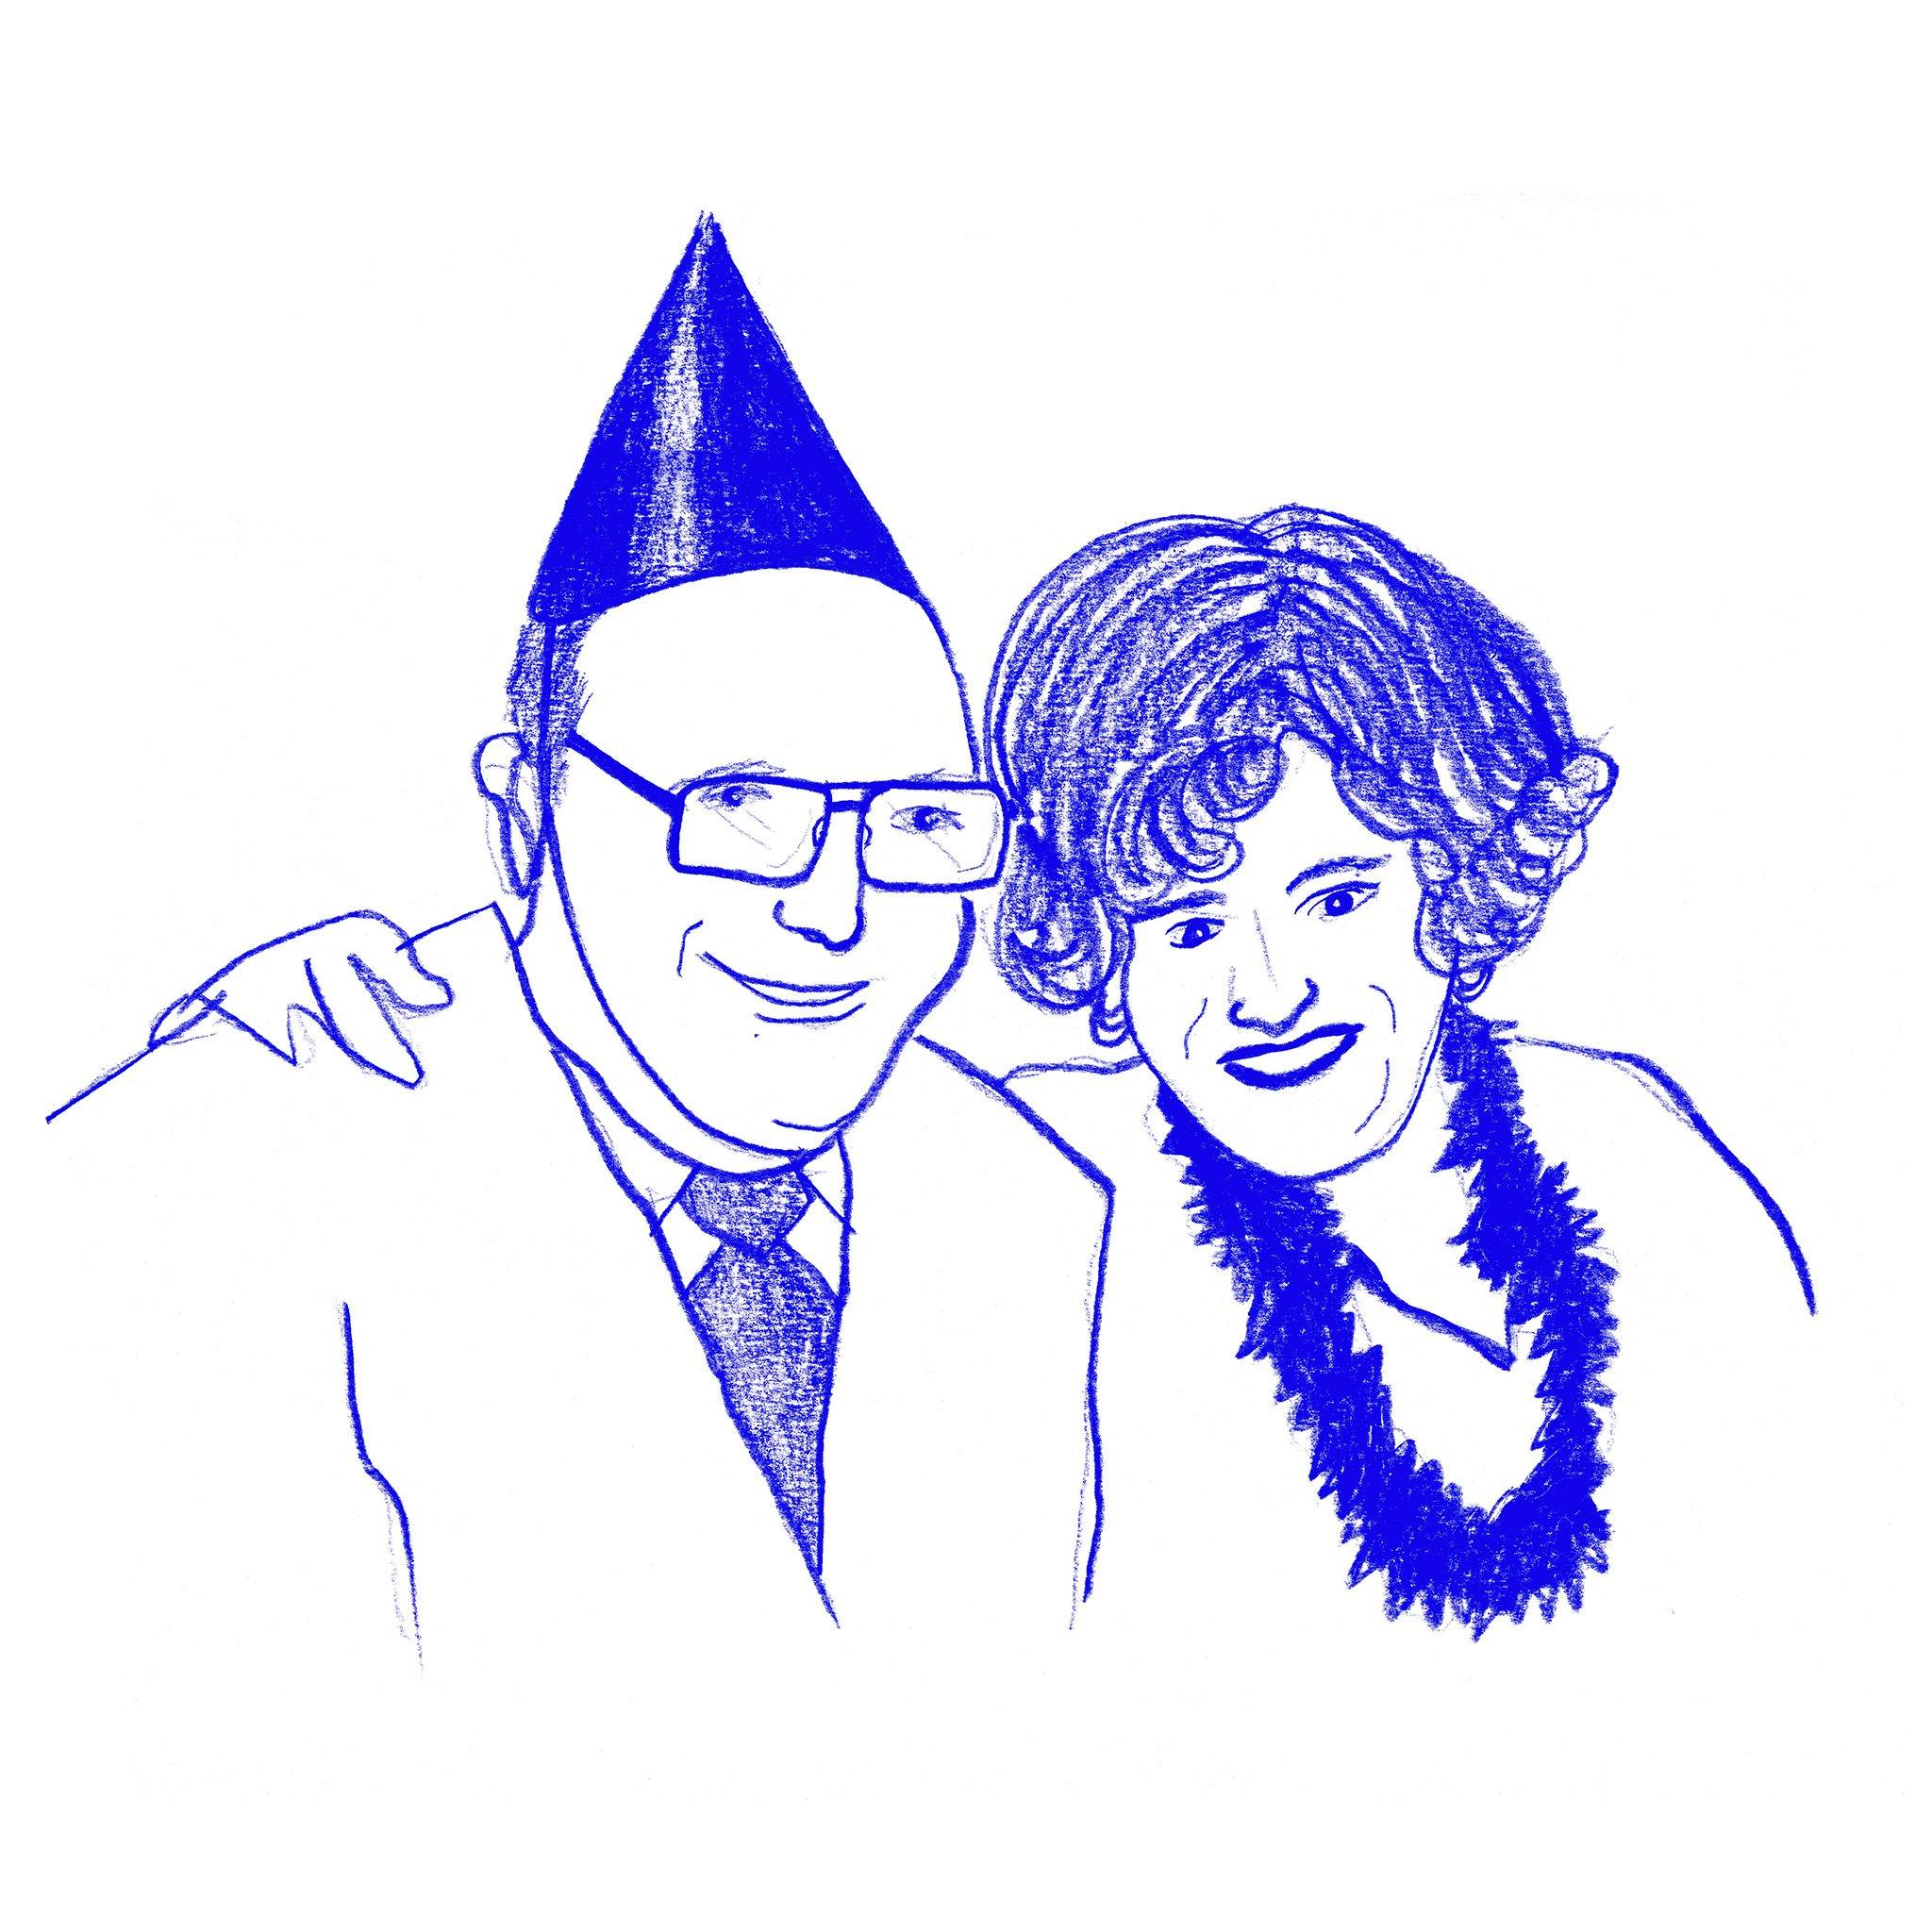 Frank & Inez, New Year's Eve, Print  by  Frank & Inez, New Year's Eve Tappan